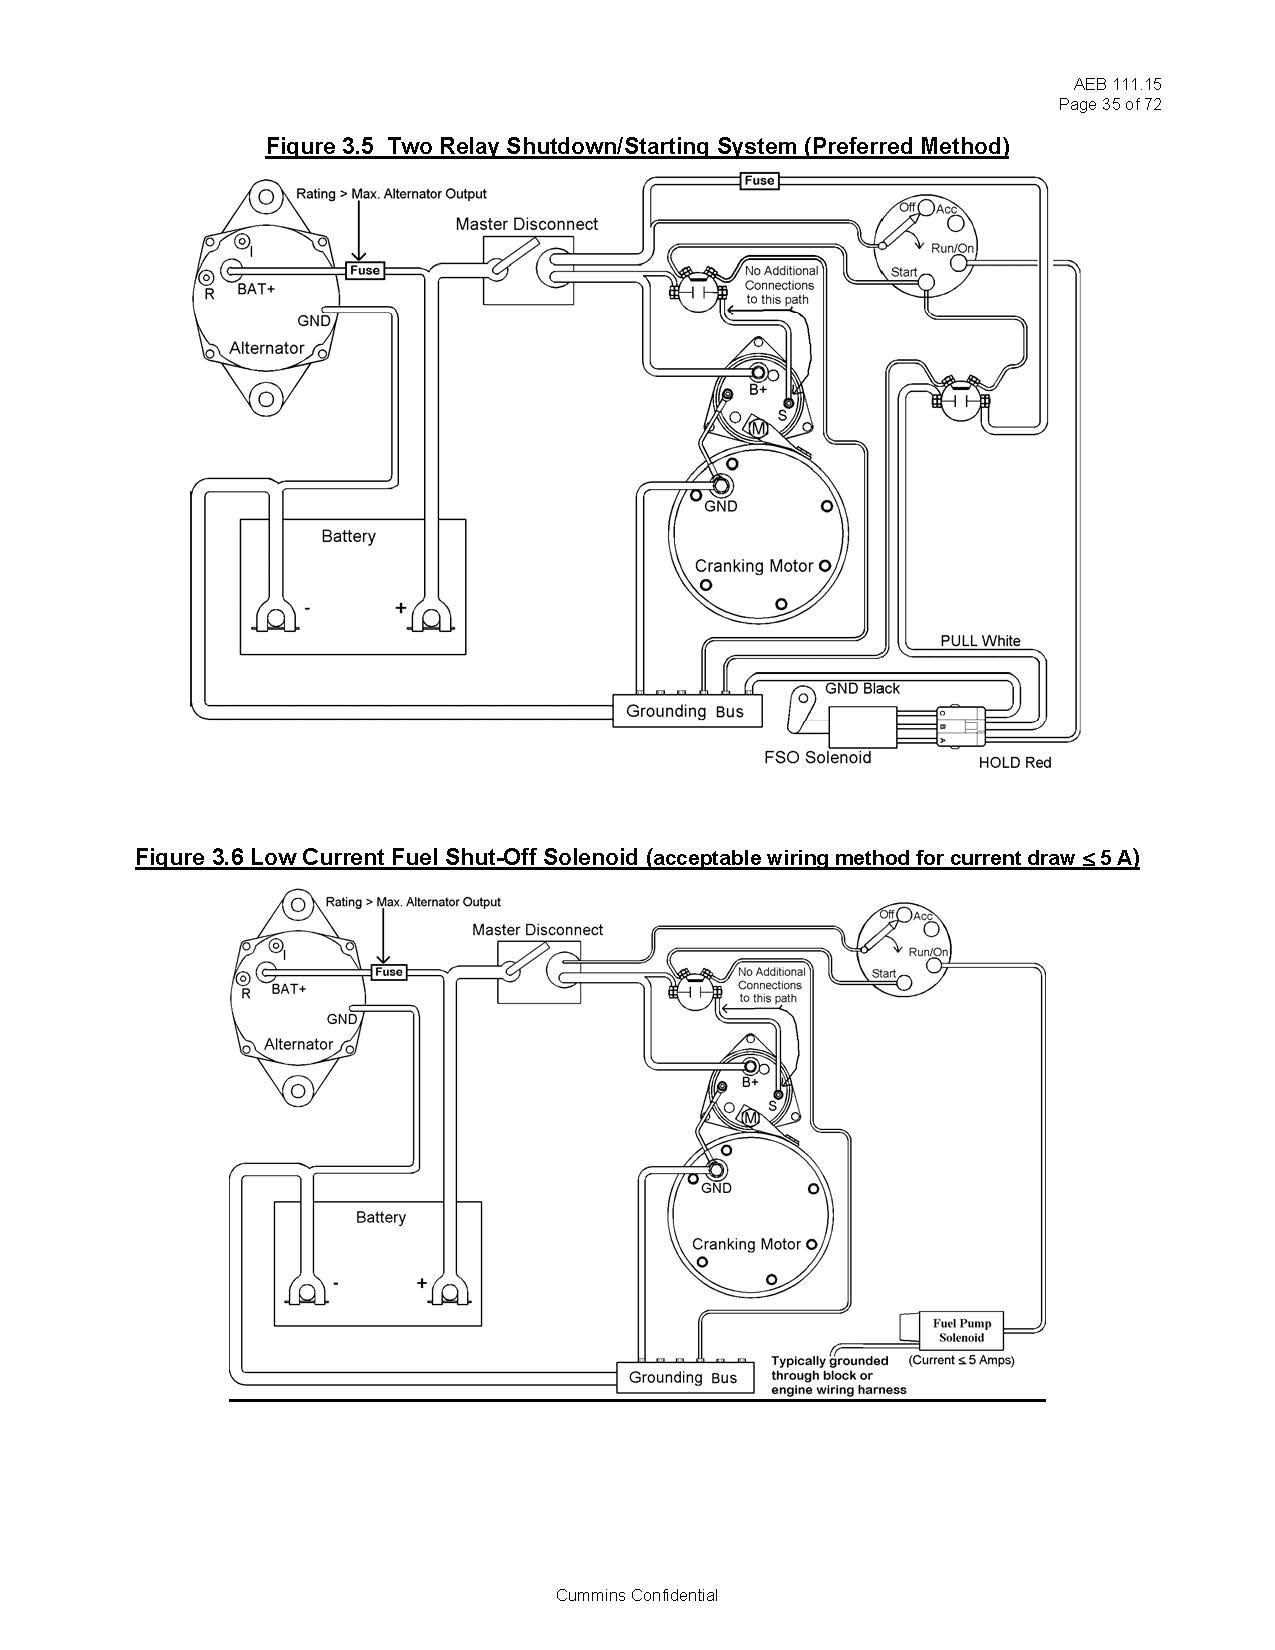 cummins wiring diagram 2002 f150 xlt radio basic fuel shutoff solenoid and starter information